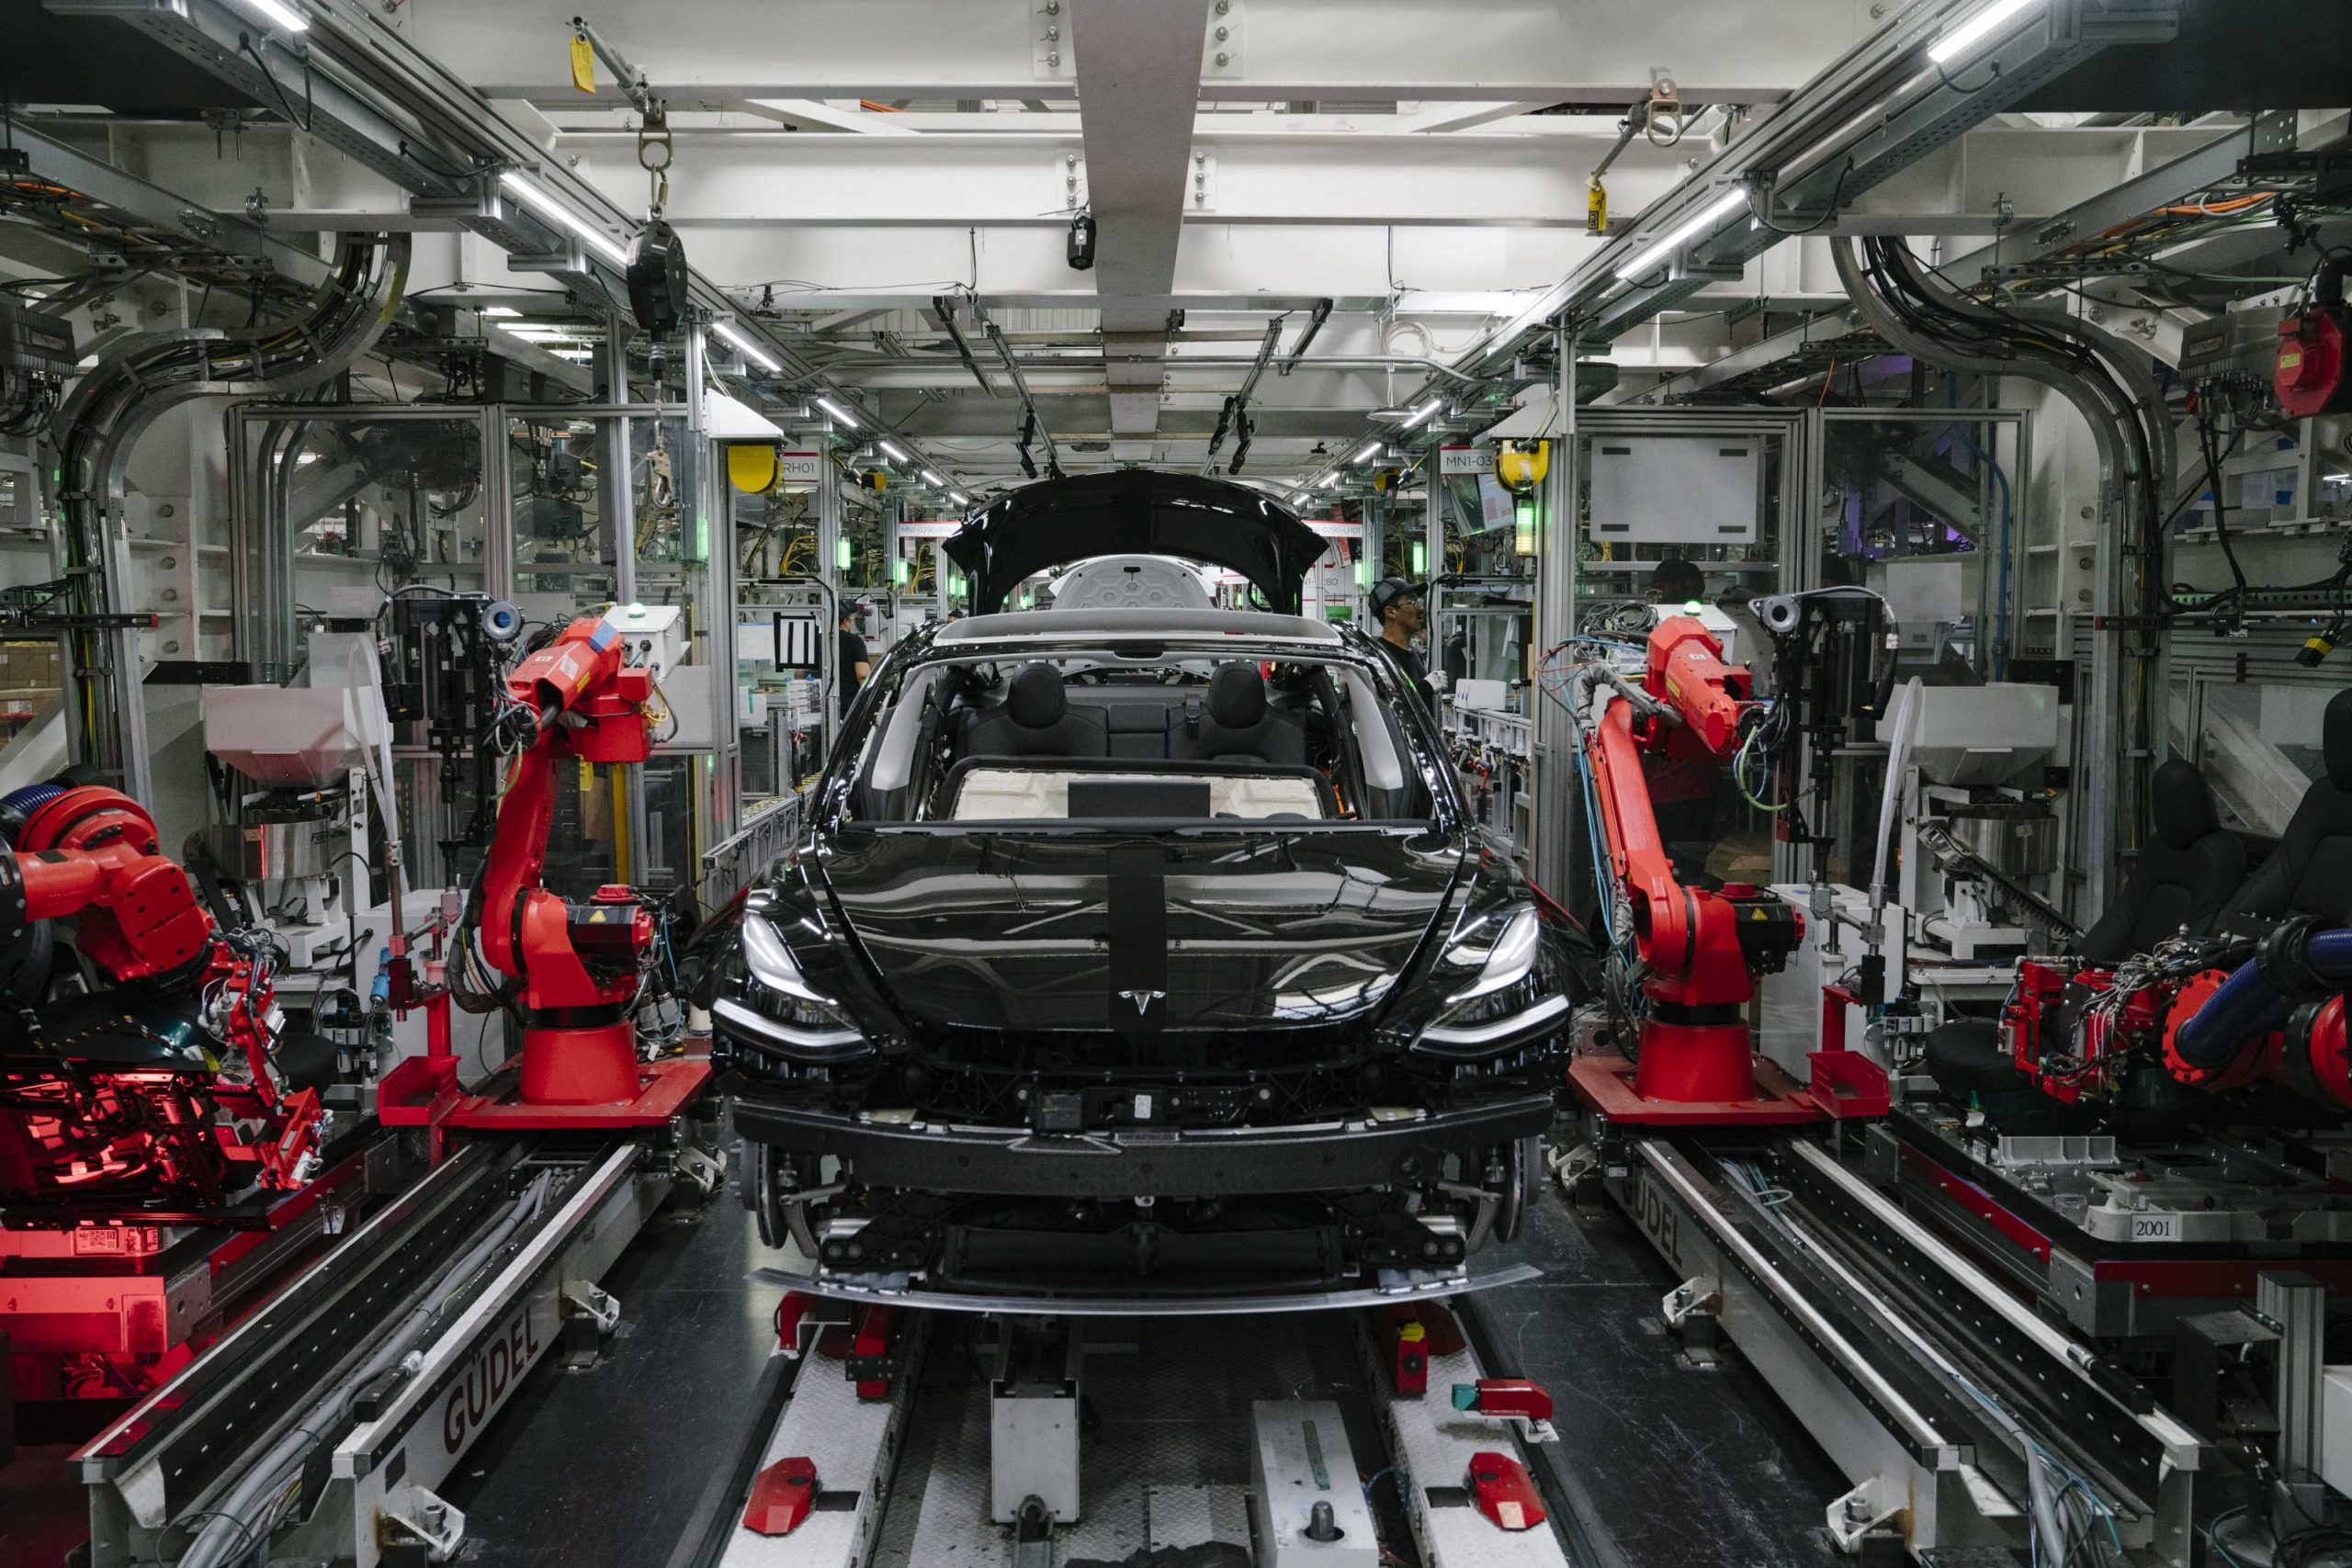 Tesla loses a manufacturing director who helped the company tackle seat and Model 3 production, sources say